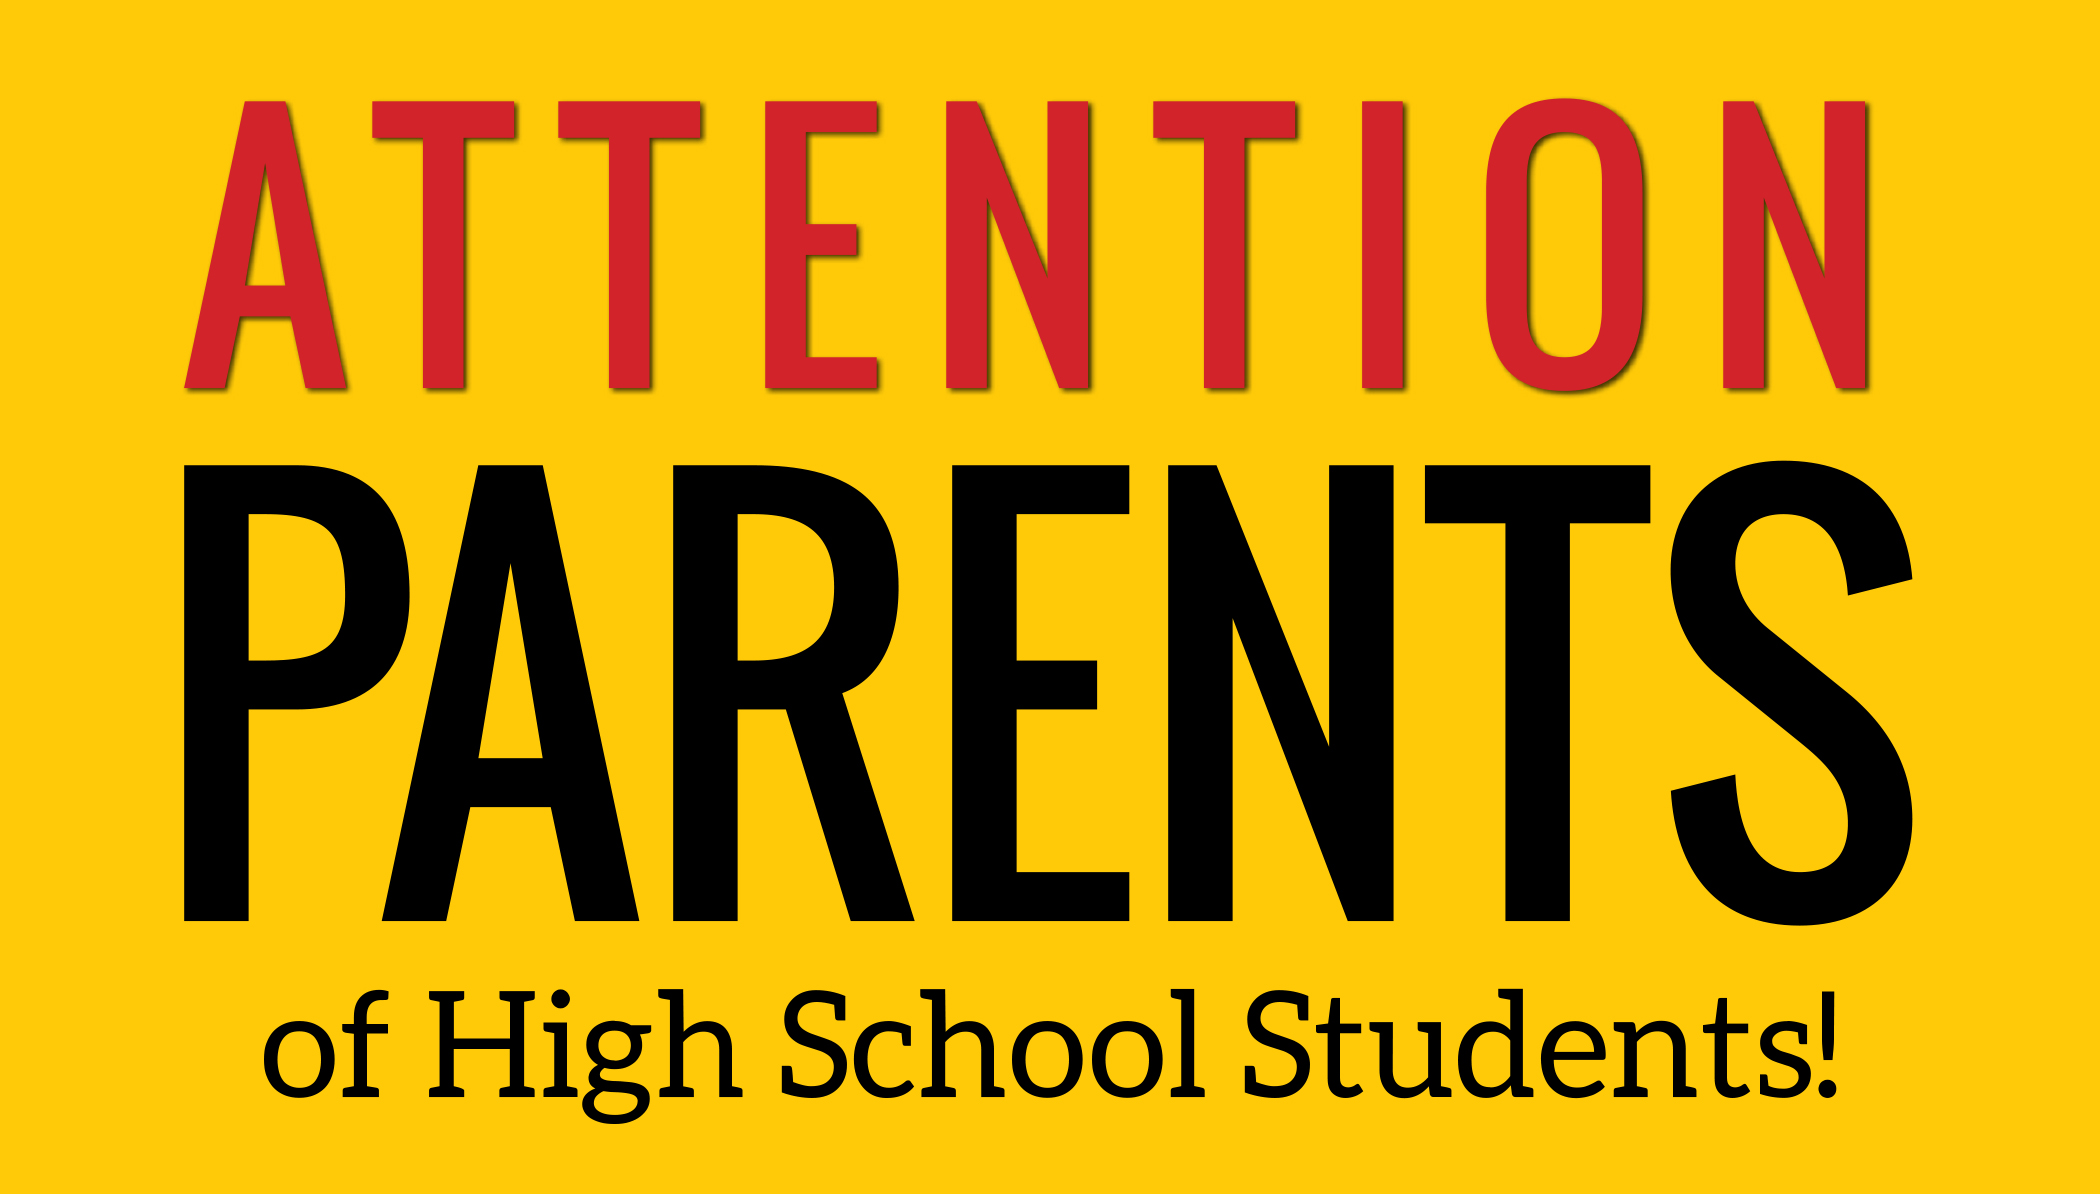 Attention Parents of High School Students